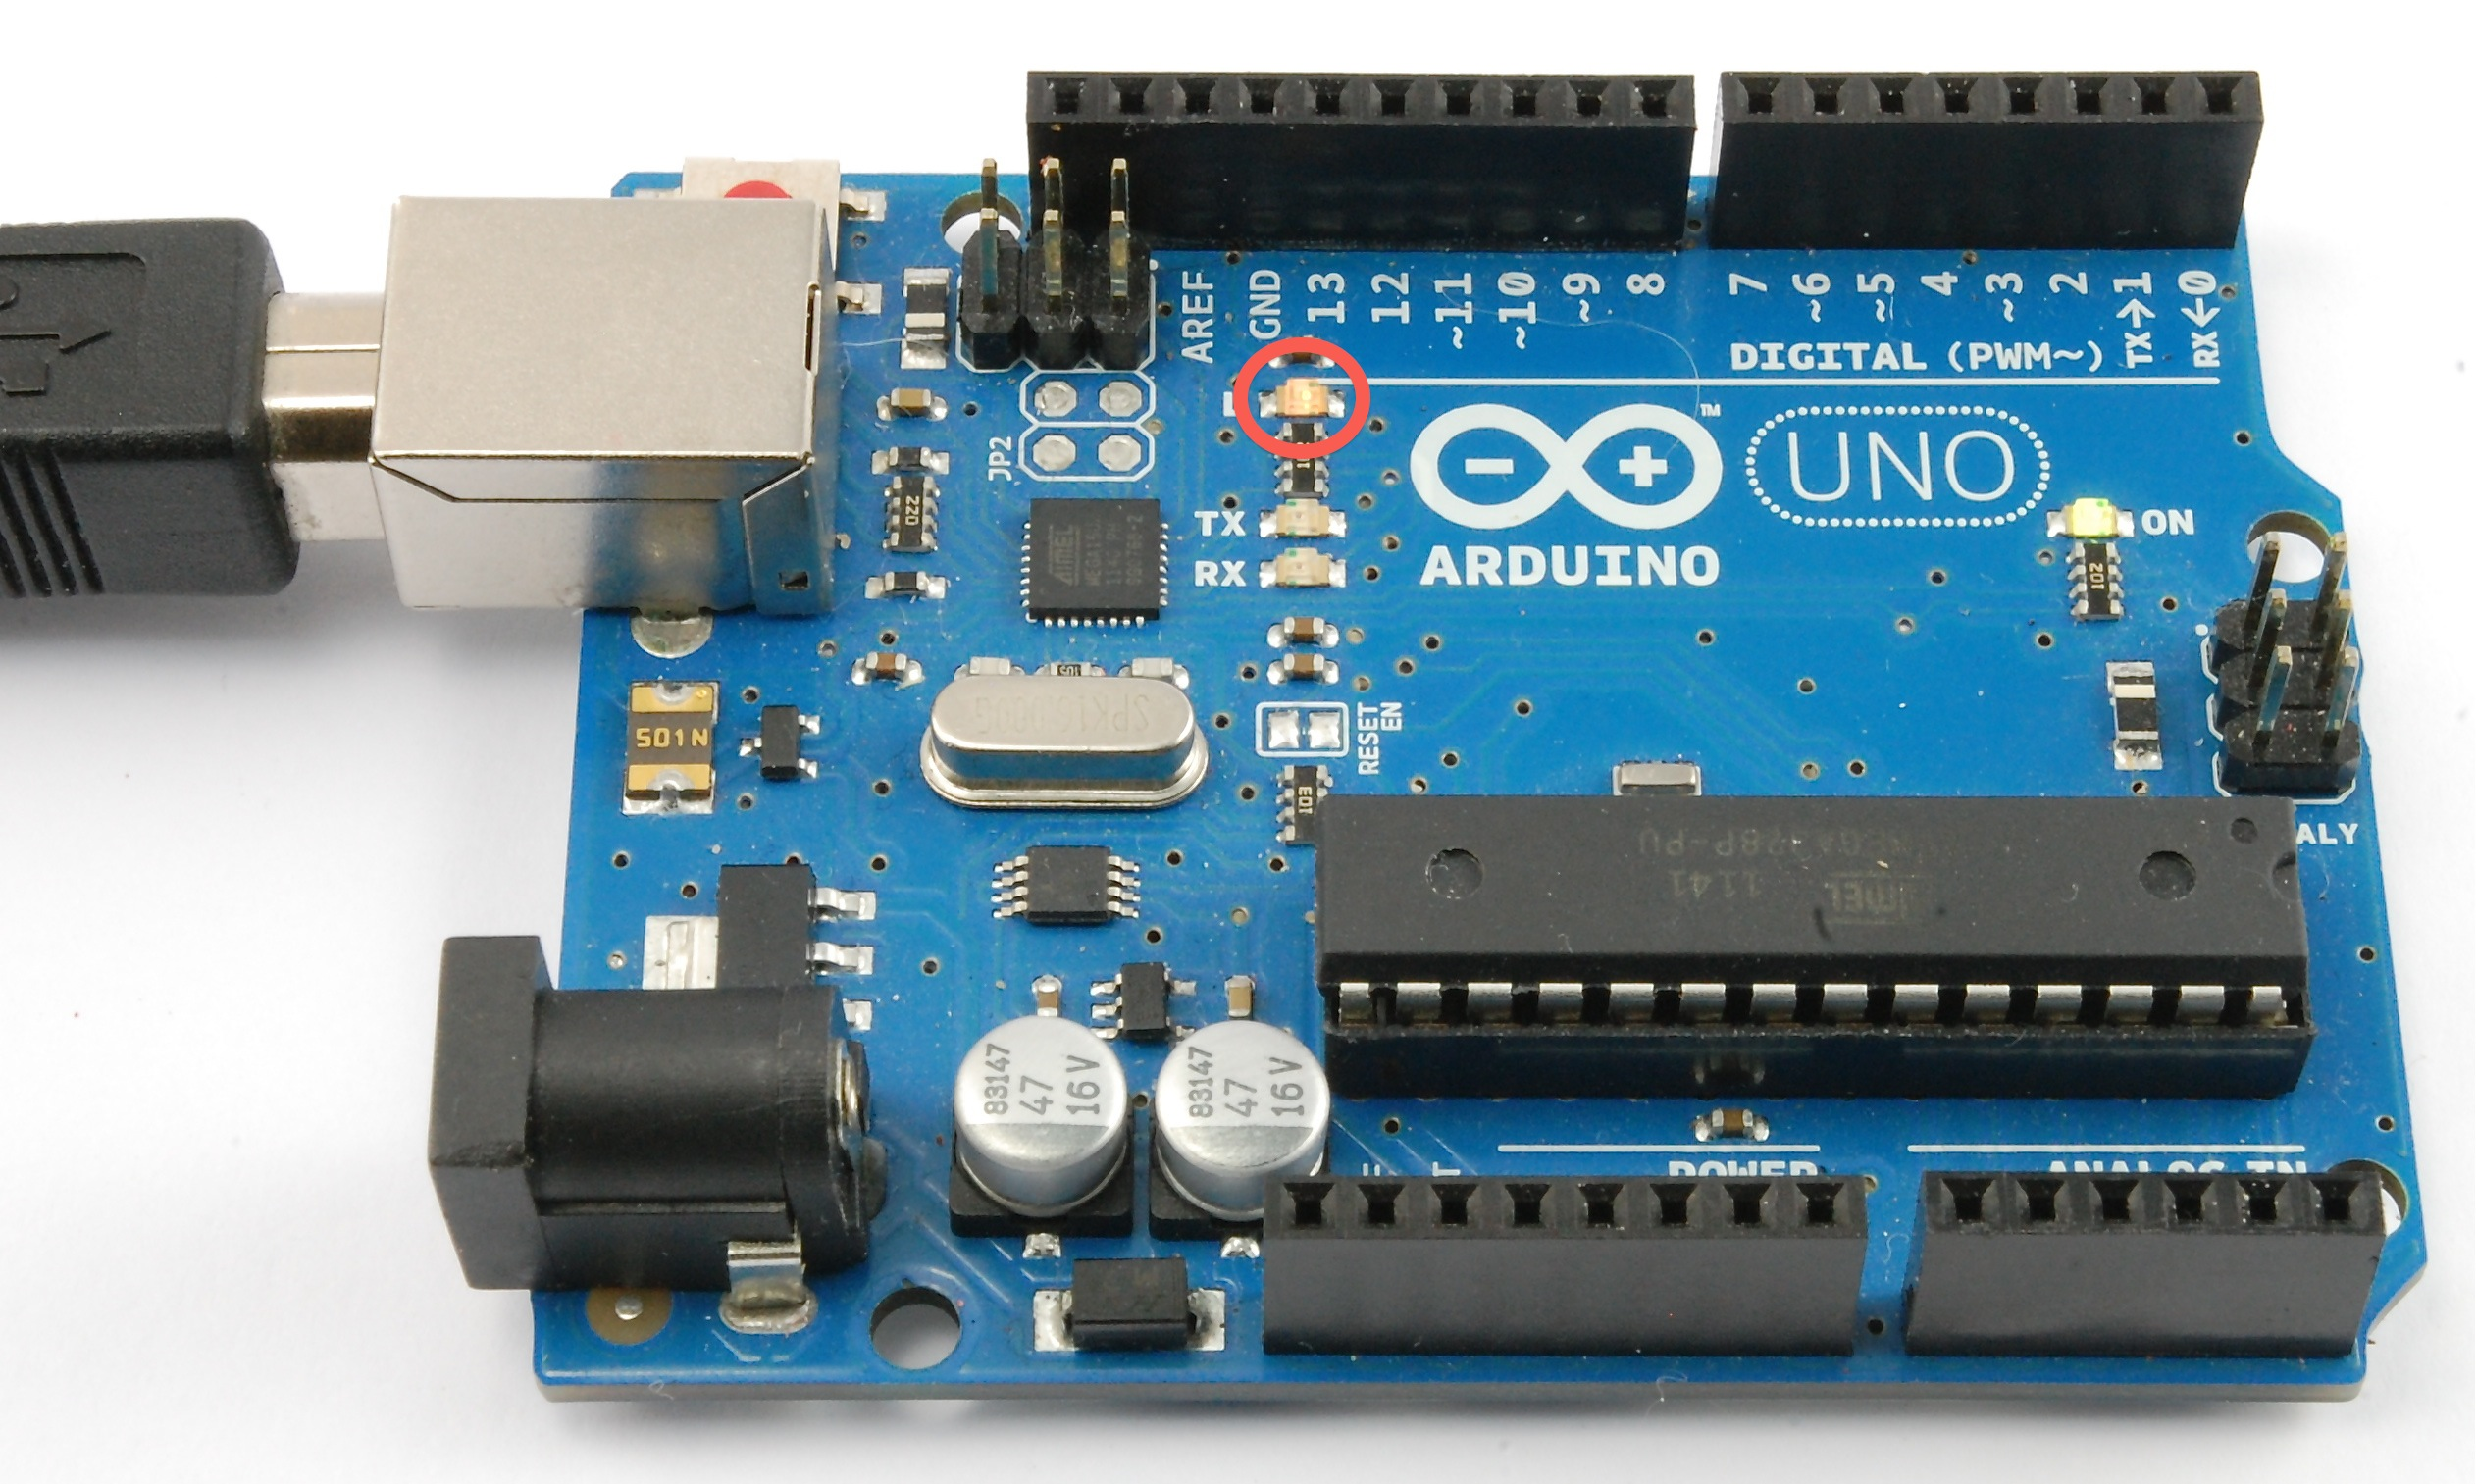 learn_arduino_uno_r3_L_circled.jpg